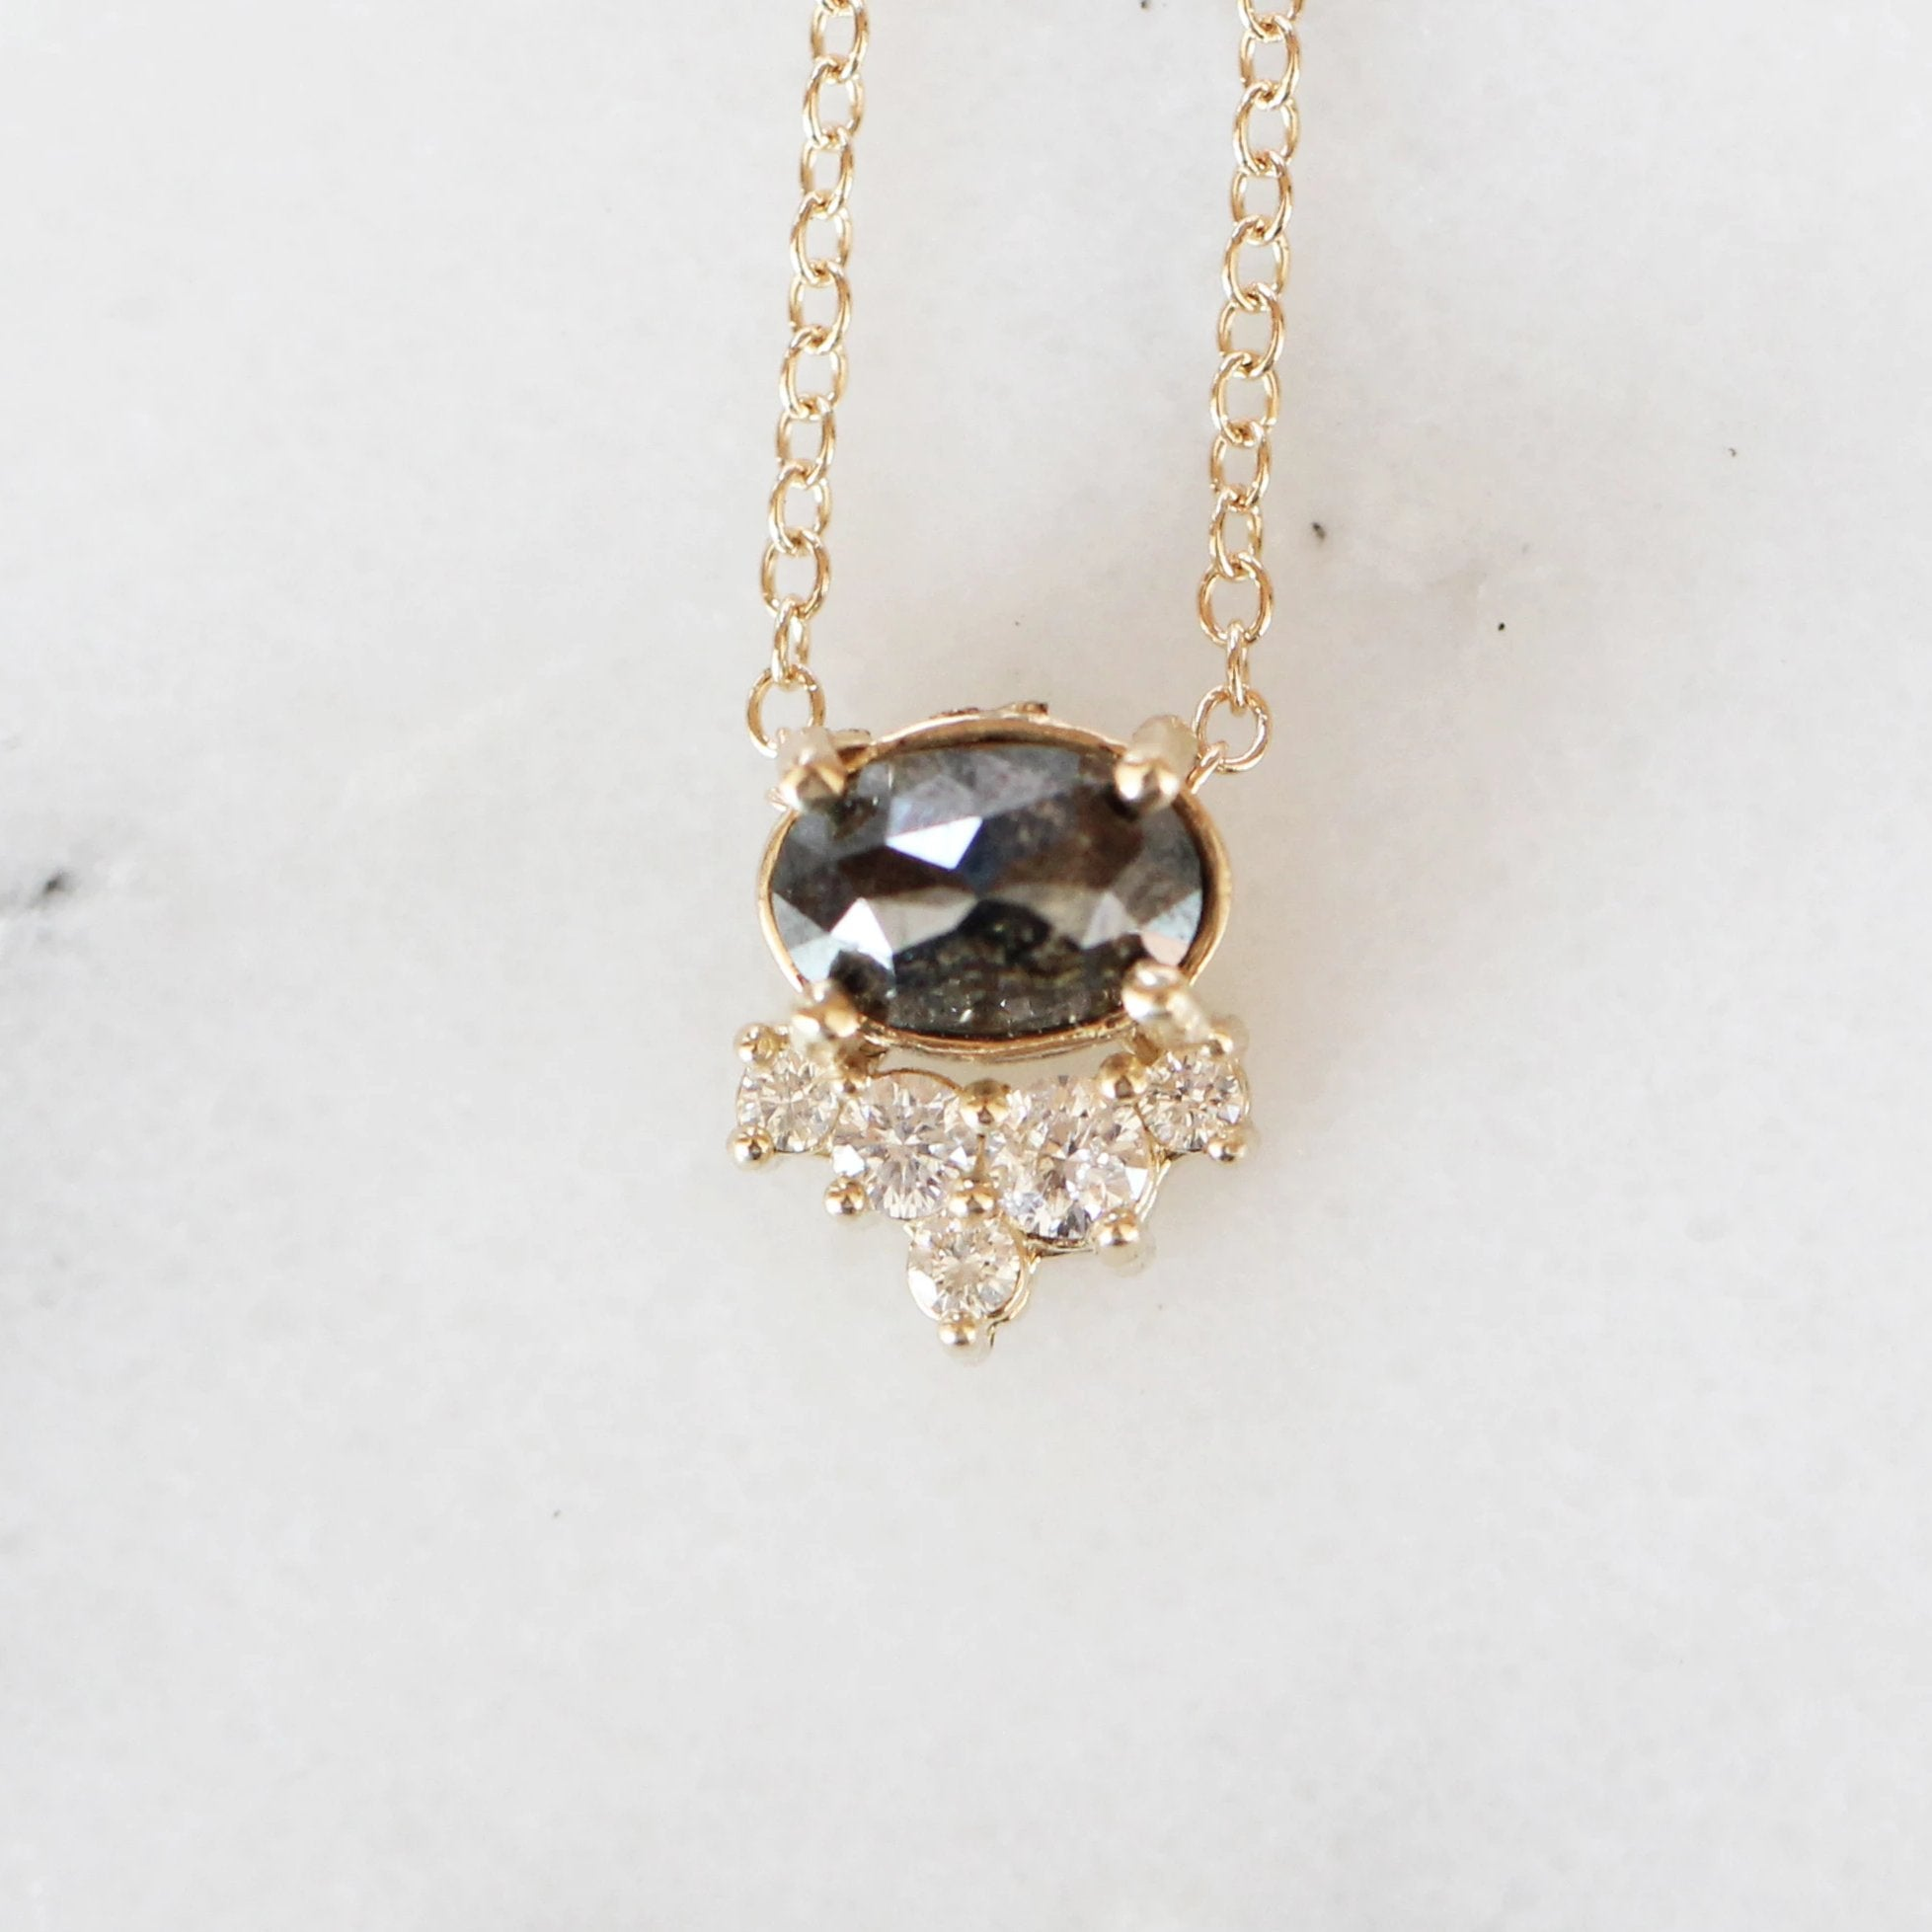 Allie - Petite Black Oval Diamond 14k Yellow Gold Necklace - Ready to Ship - Celestial Diamonds ® by Midwinter Co.